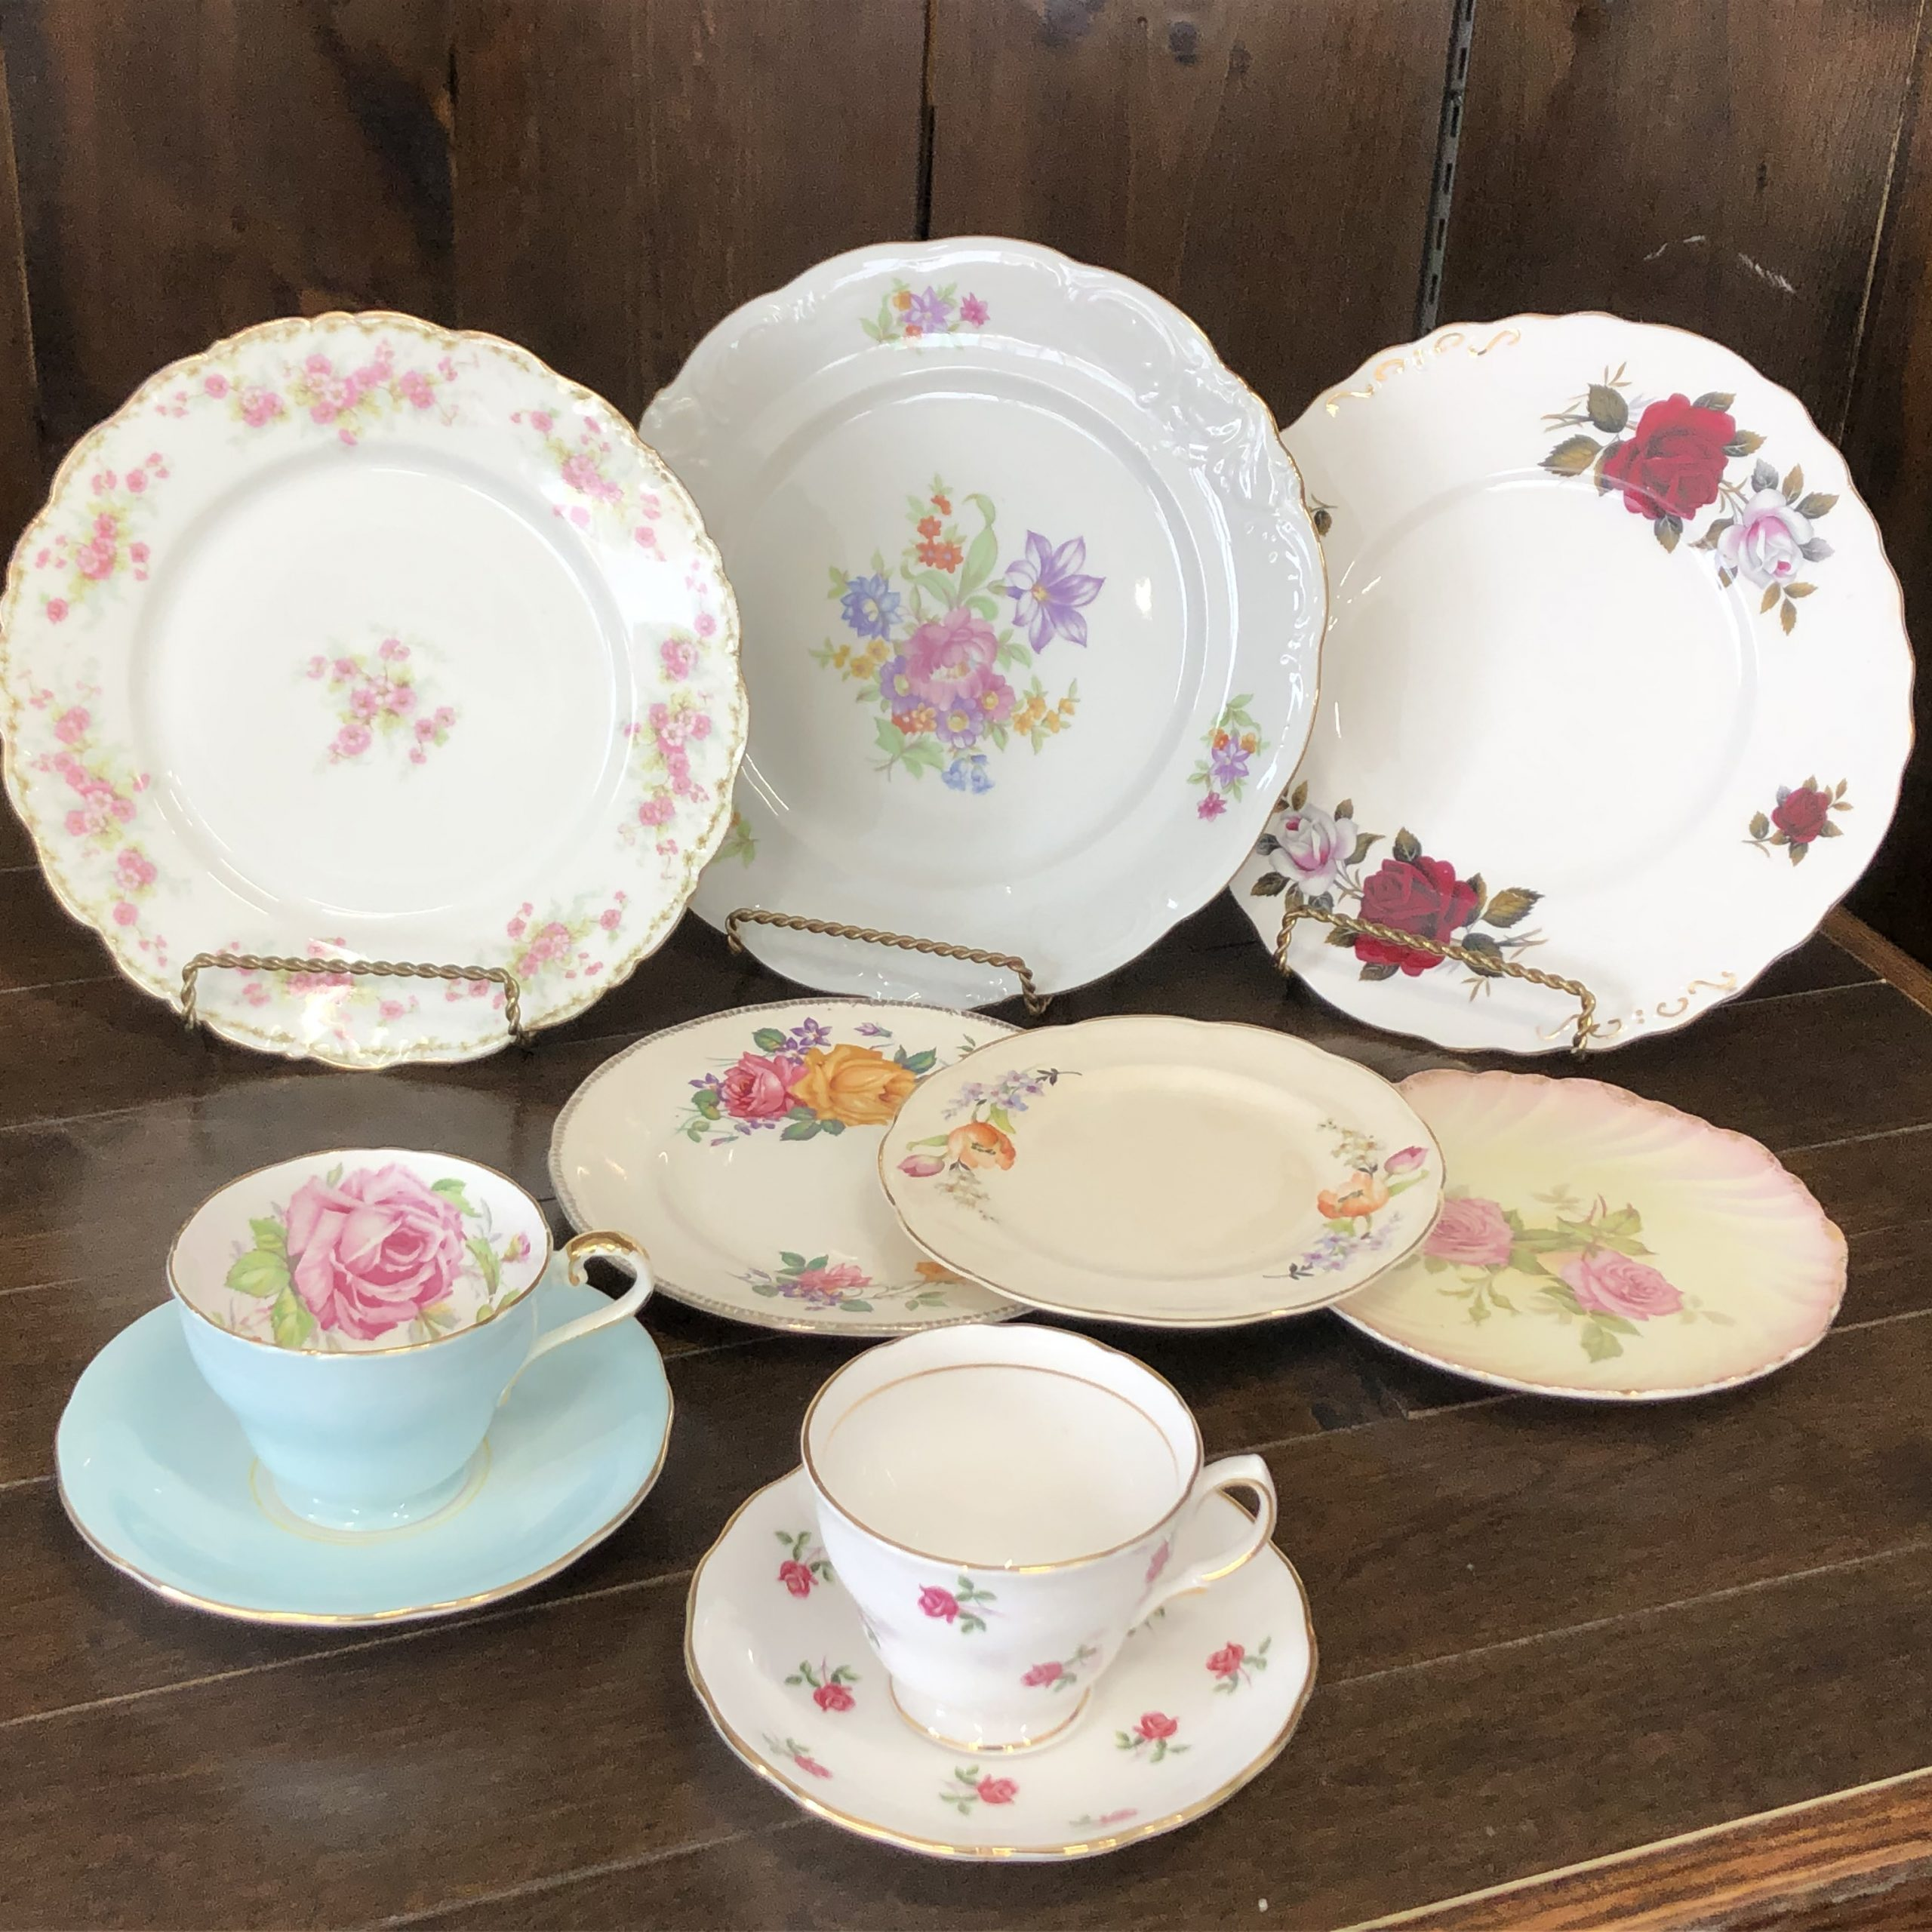 Vintage China Dishware Setting Image